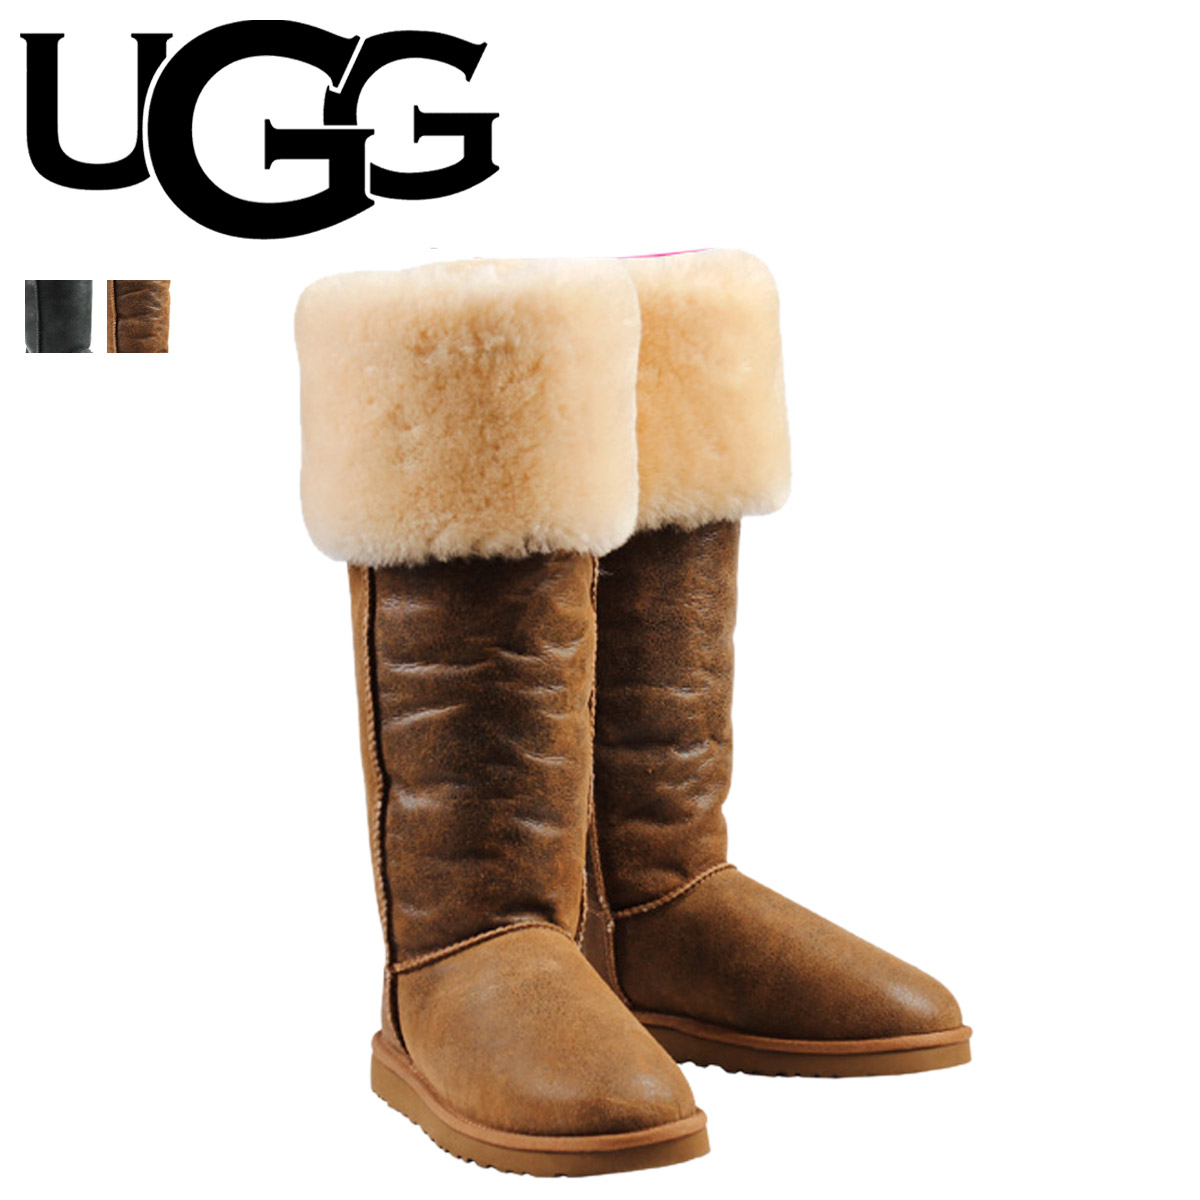 9982f28a1da Whats up Sports   SOLD OUT  UGG UGG Sheepskin boots knee high boots ...